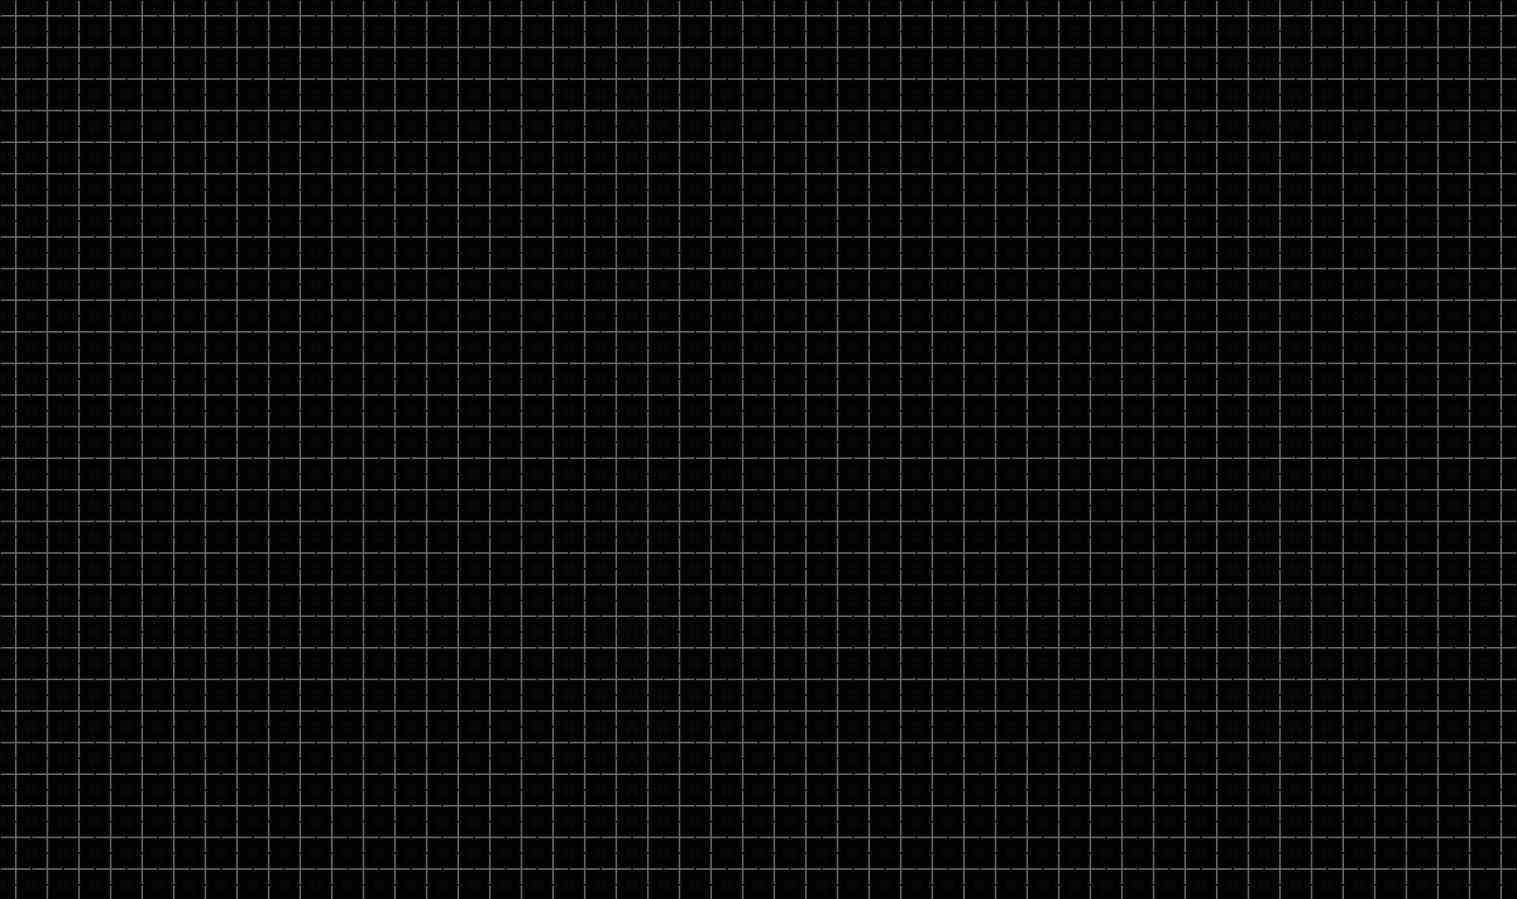 Iphone Black And White Grid Wallpaper